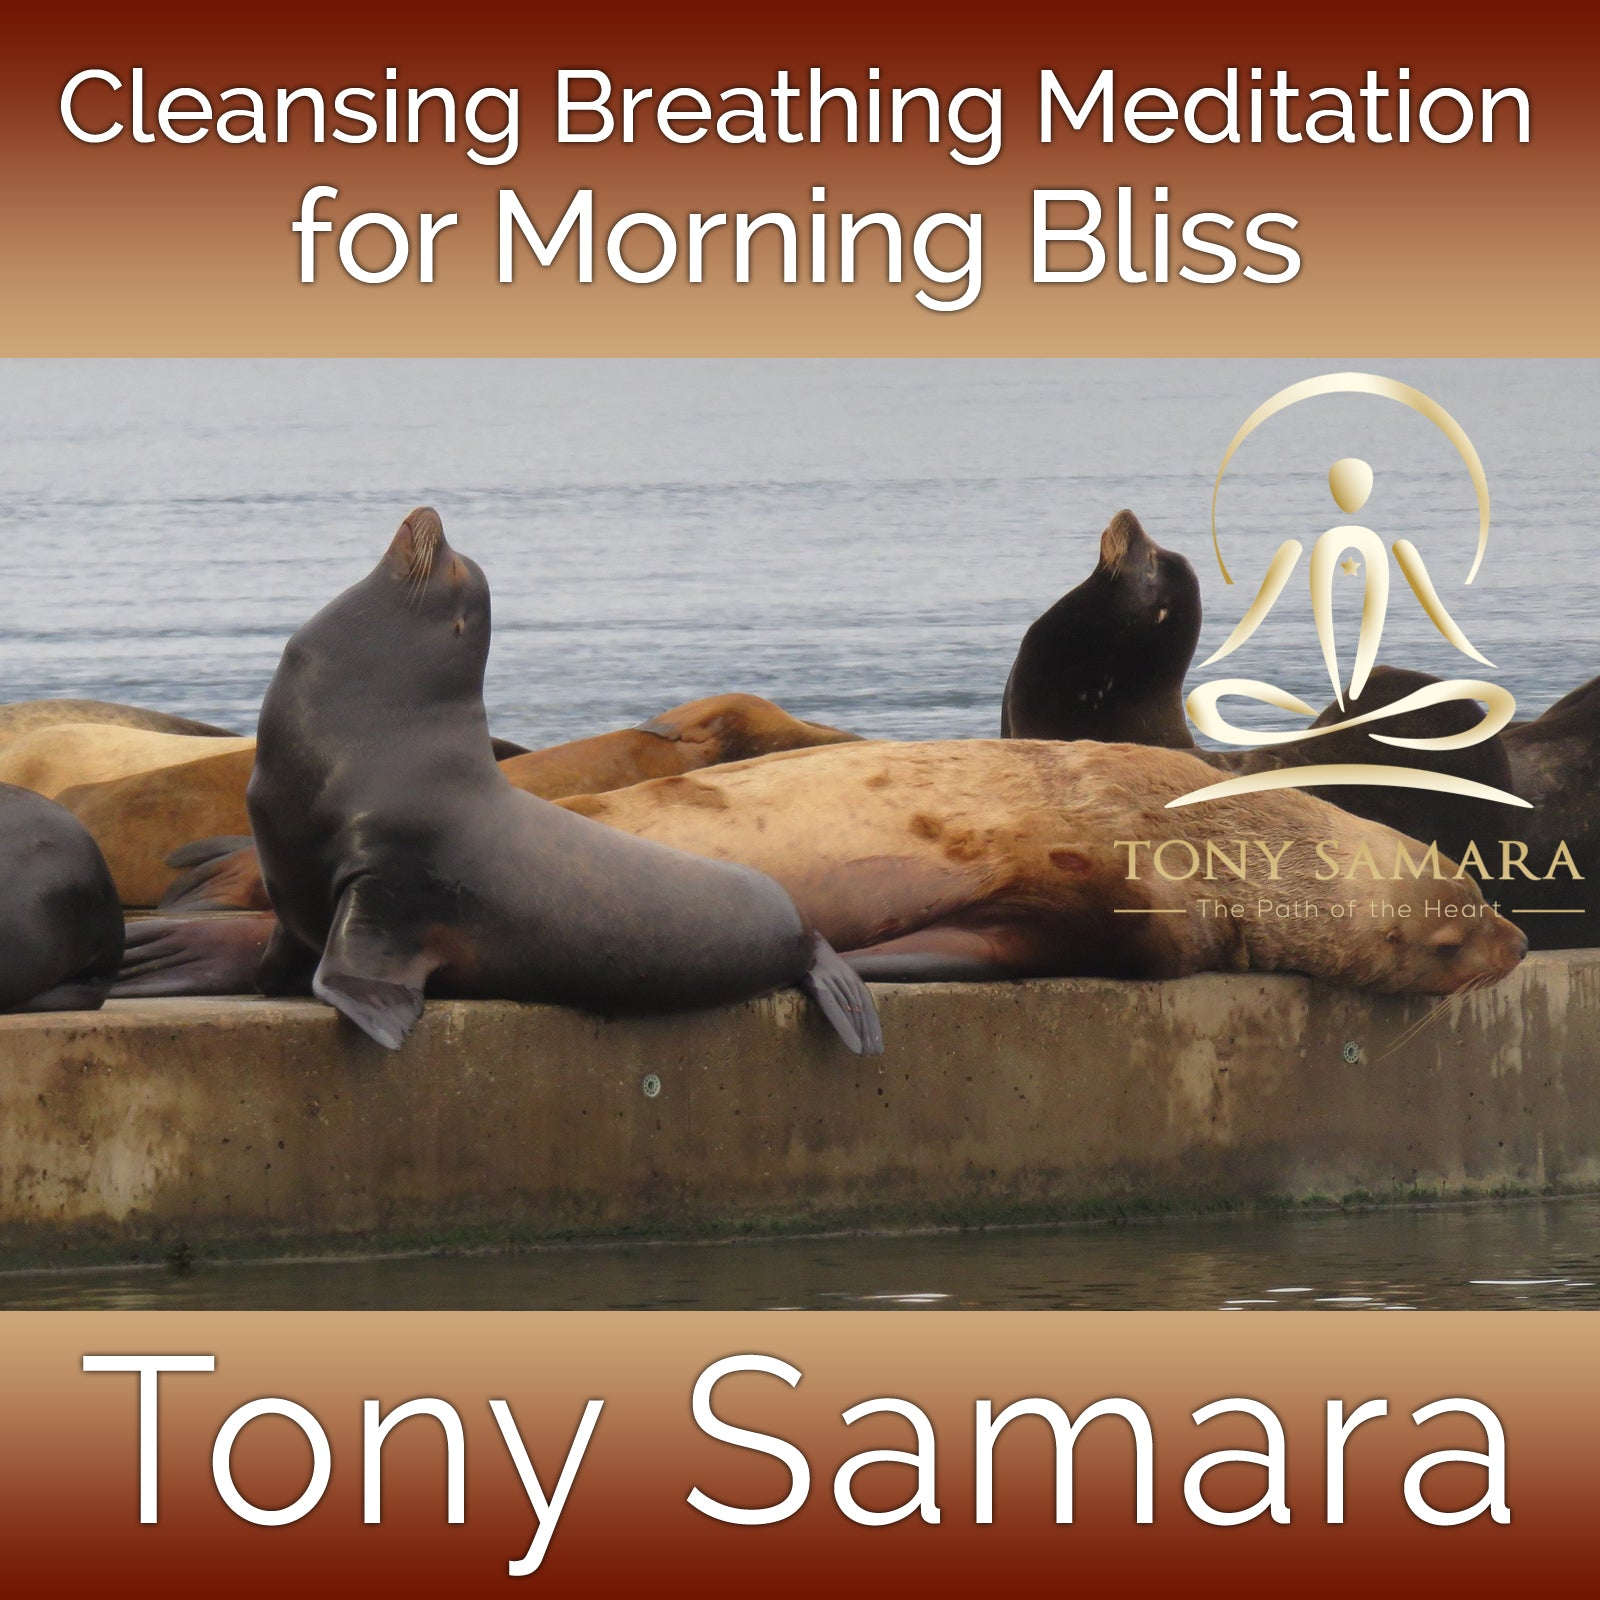 Cleansing Breathing Meditation for Morning Bliss (MP3 Audio Download) - Tony Samara Meditation